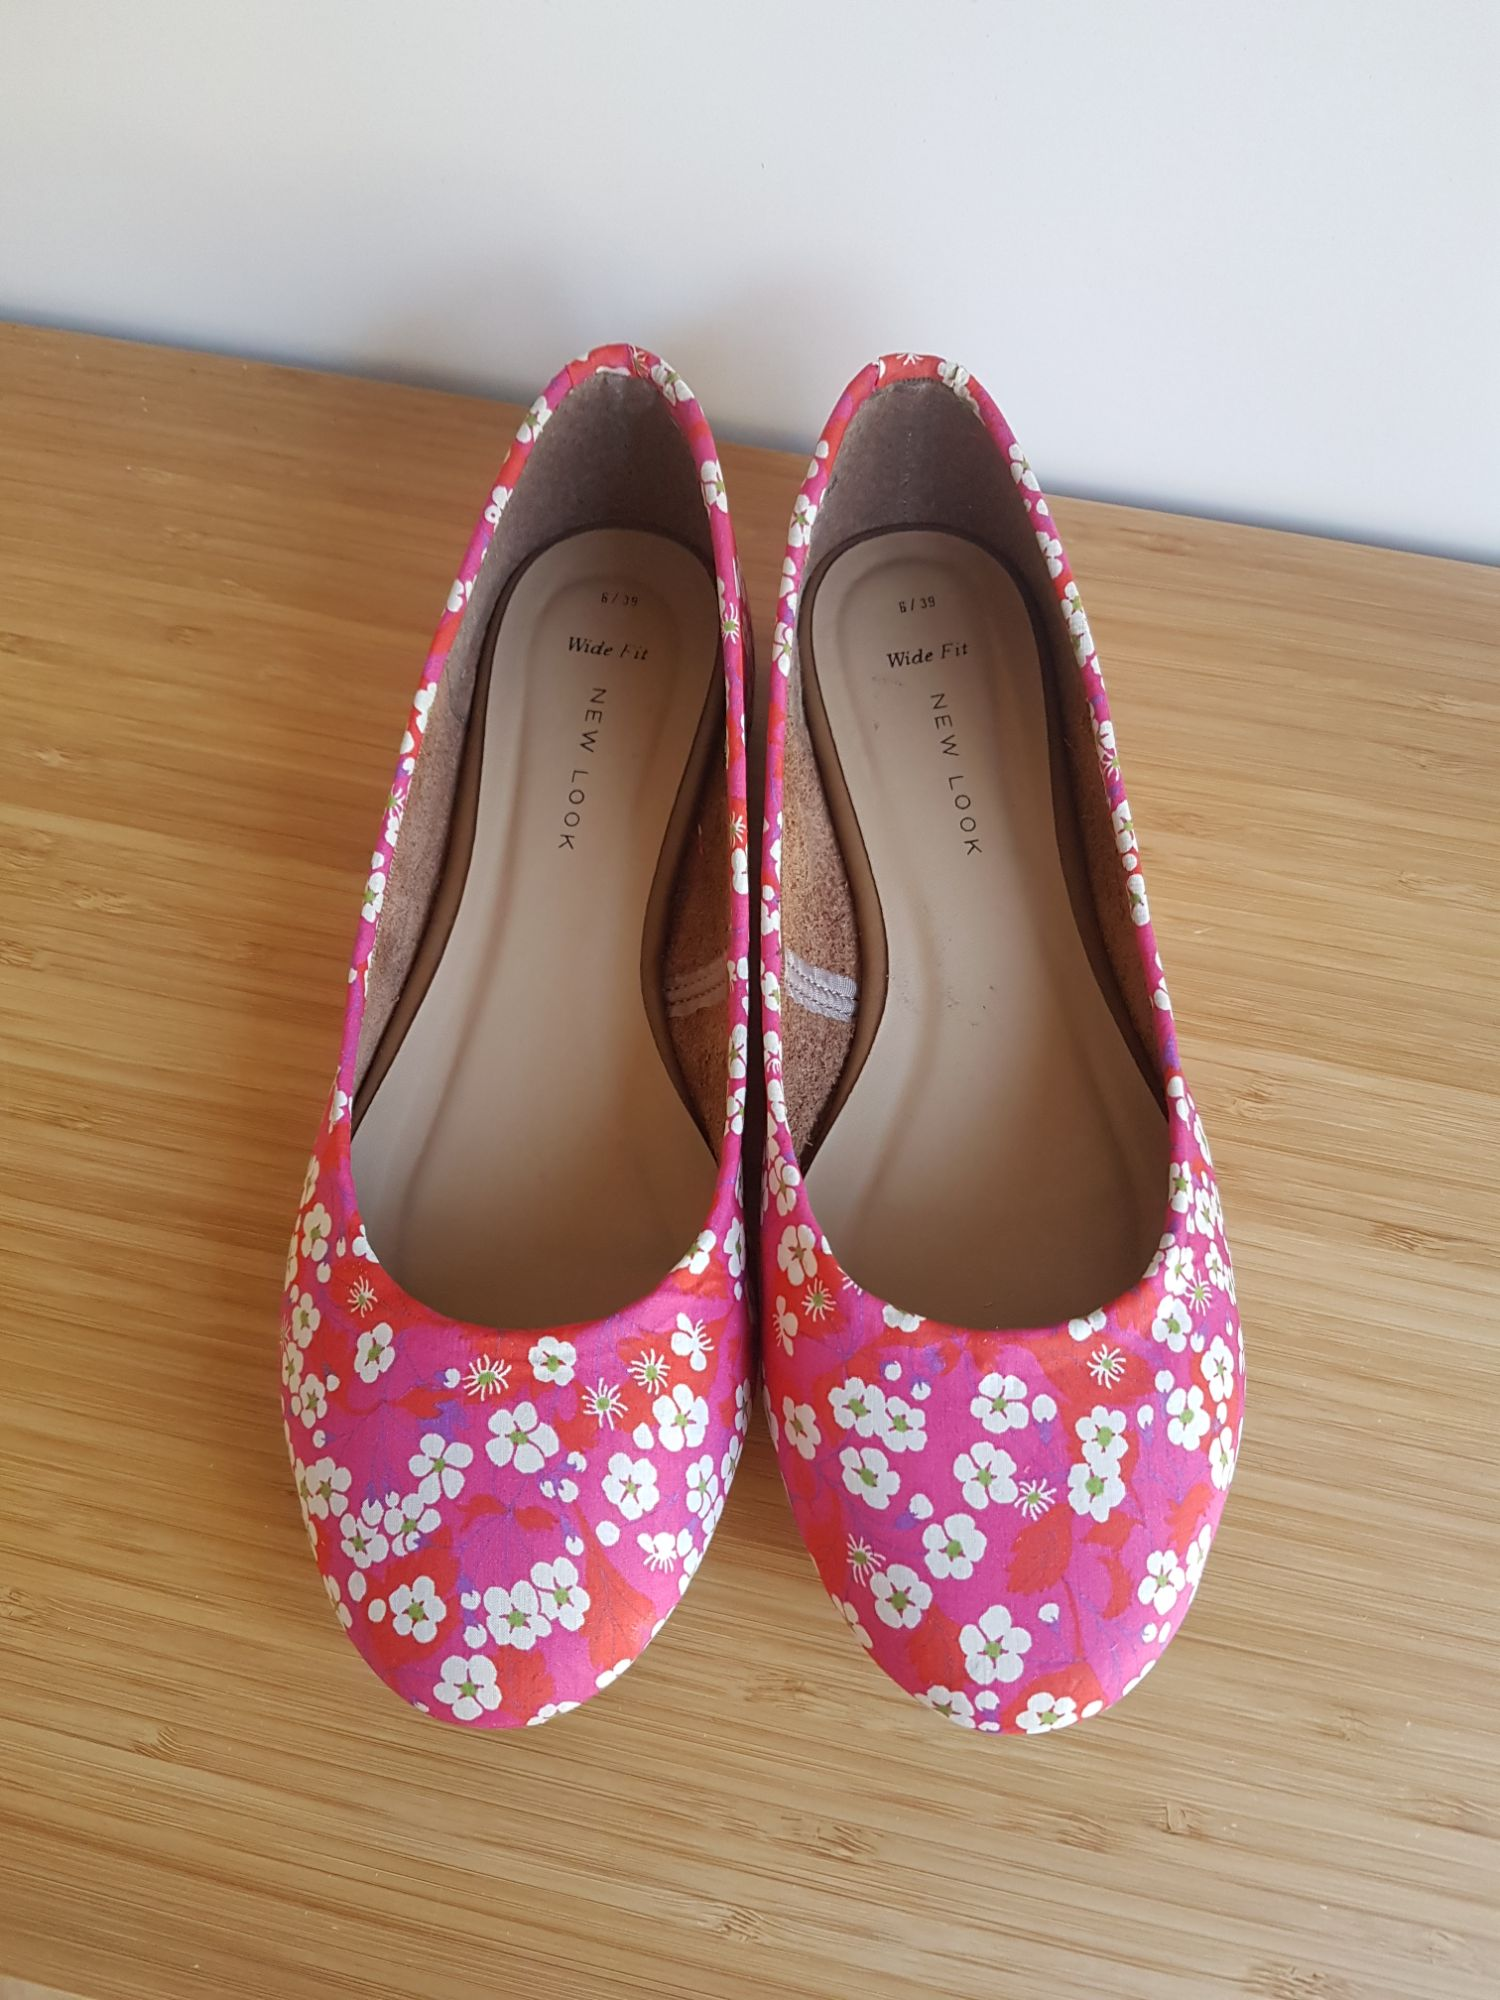 Liberty of London flats